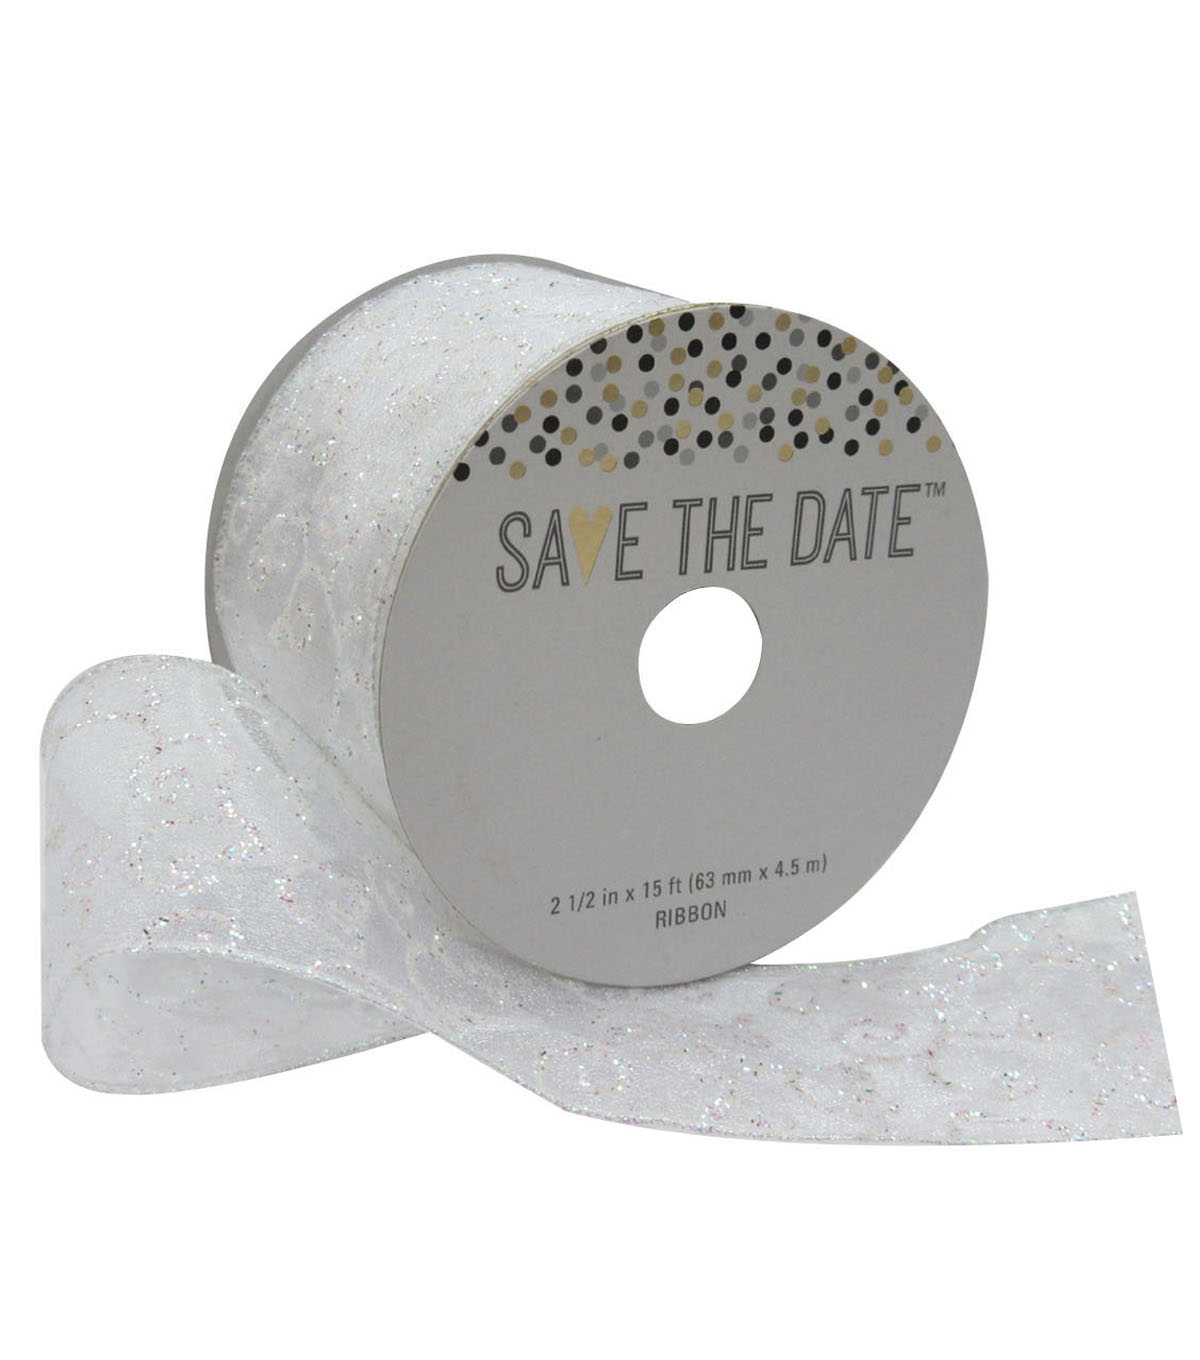 Save the Date 2.5\u0027\u0027 X 15\u0027 Ribbon-Iridescent Swirl